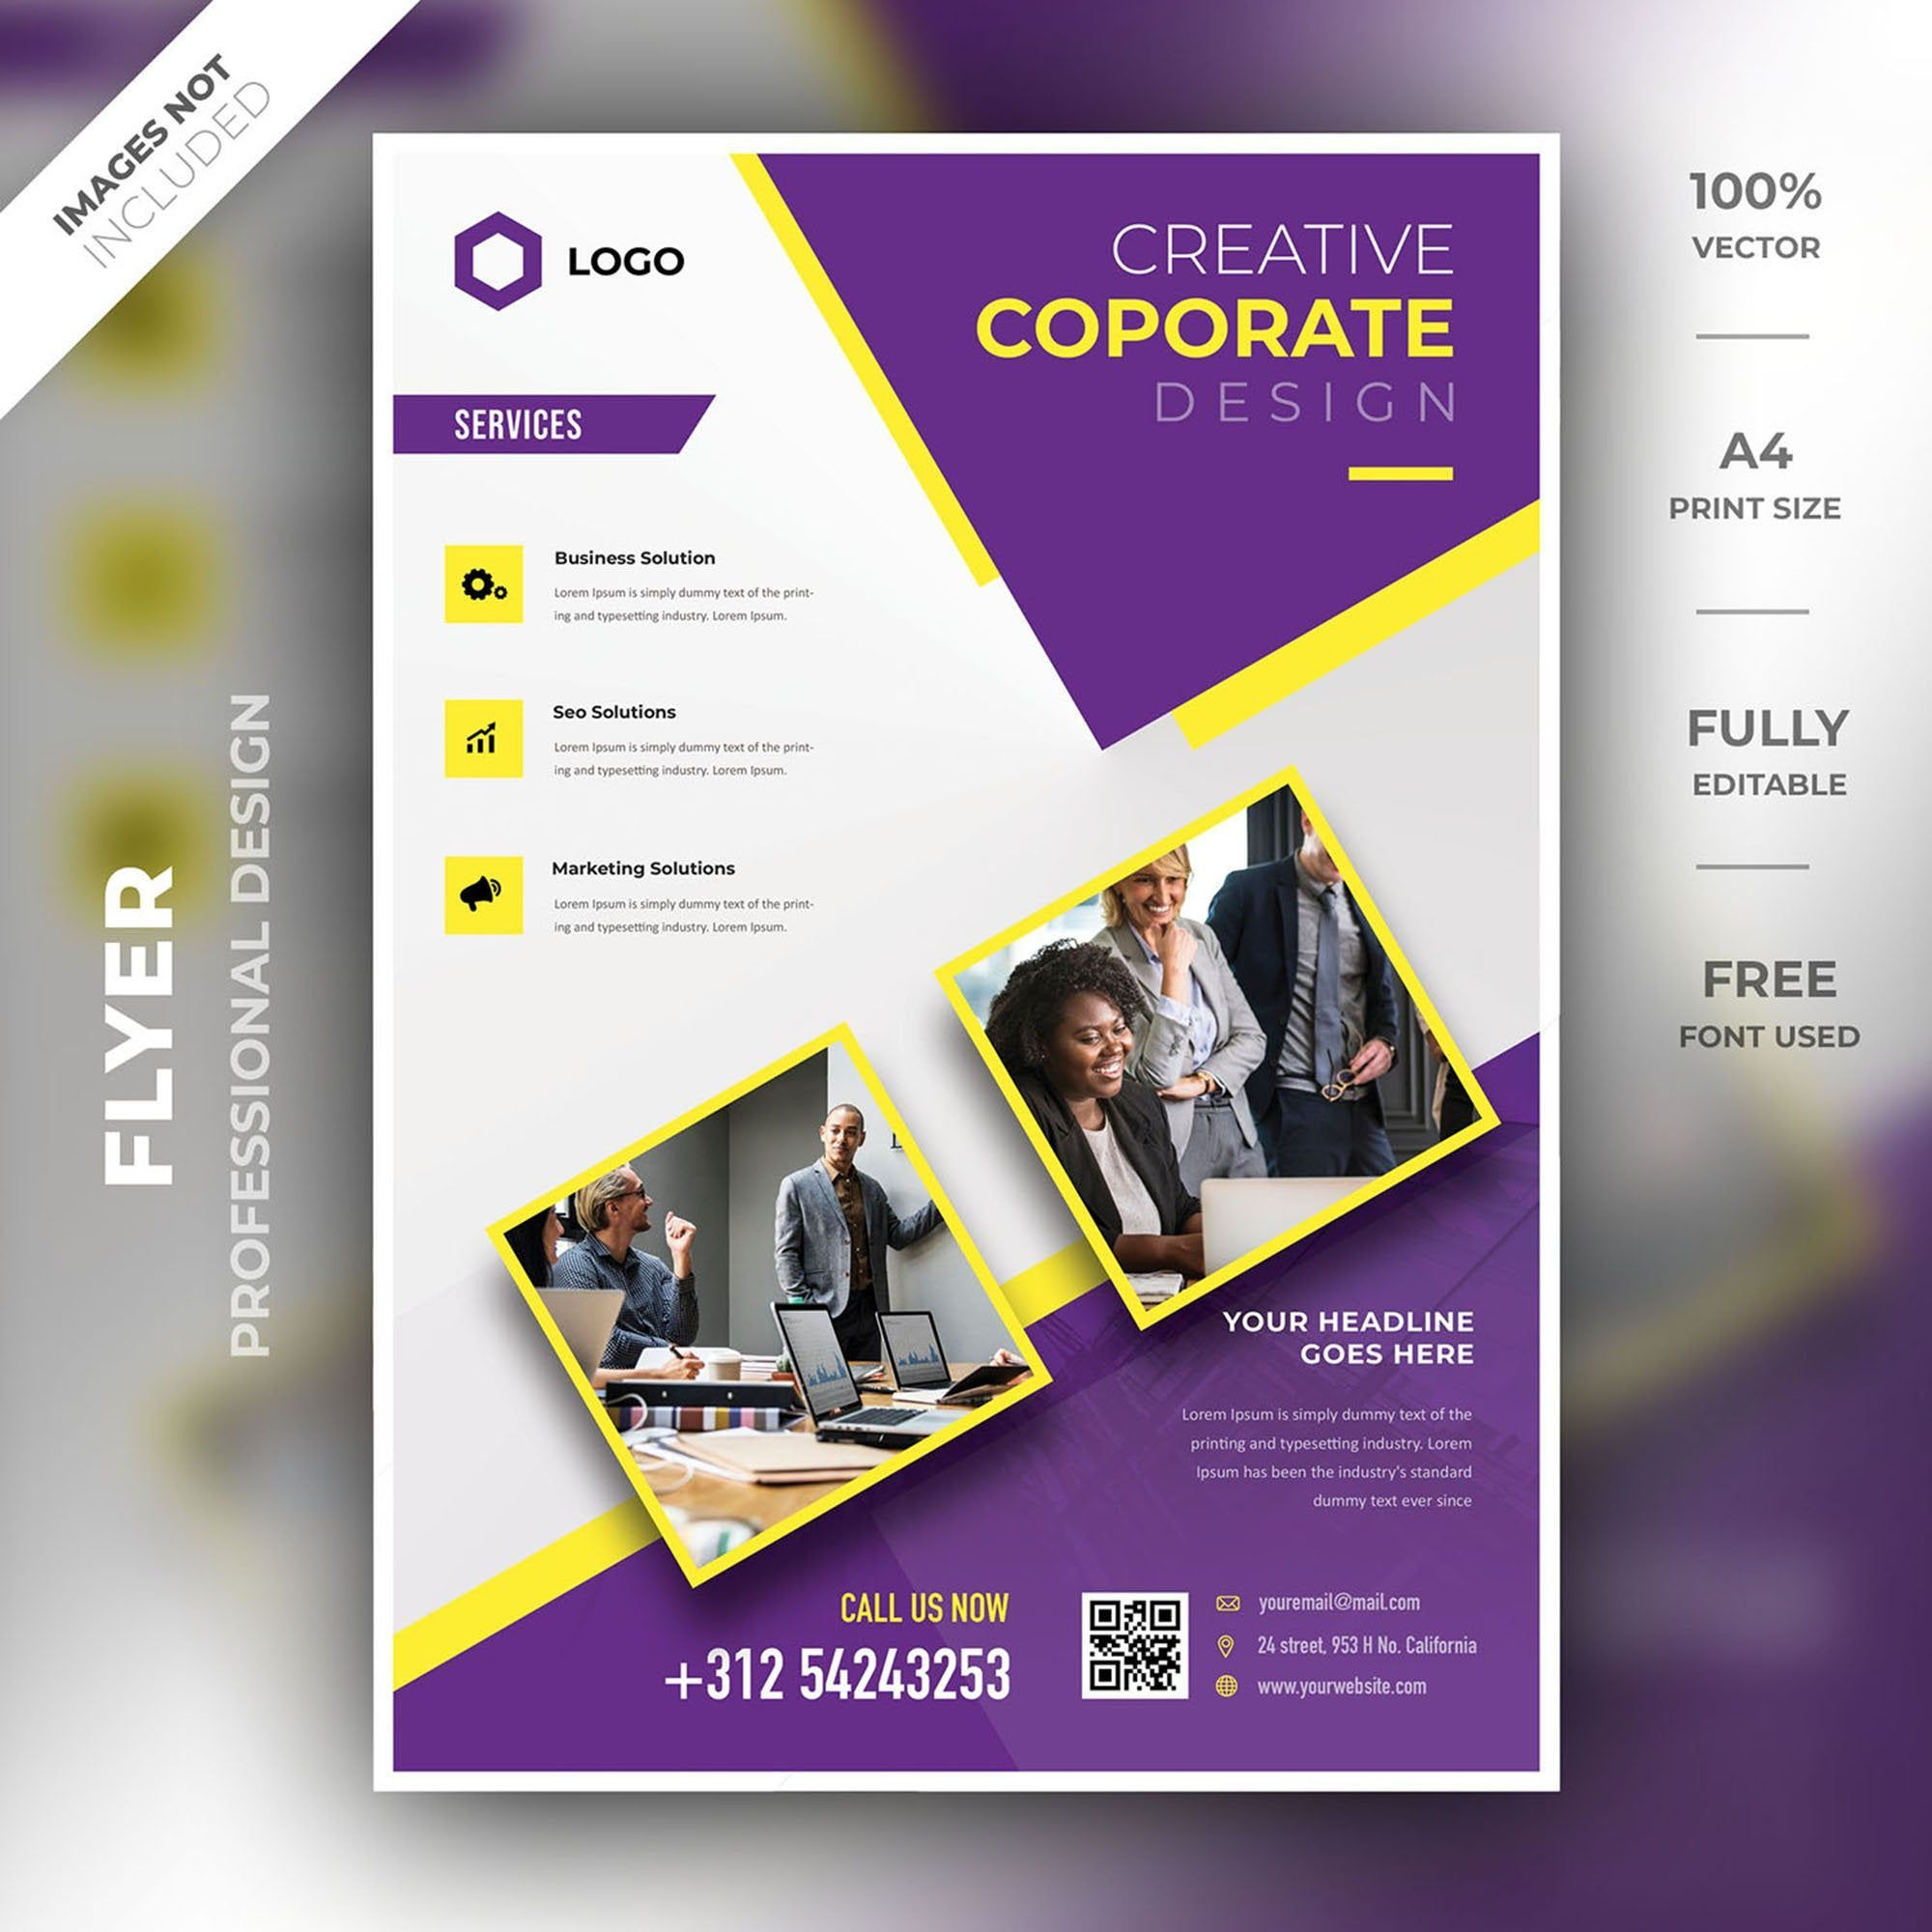 Business Flyer Template Corporate Template Photoshop Psd Business Flyer A4 Business Flyer Templates Flyer Flyer Template